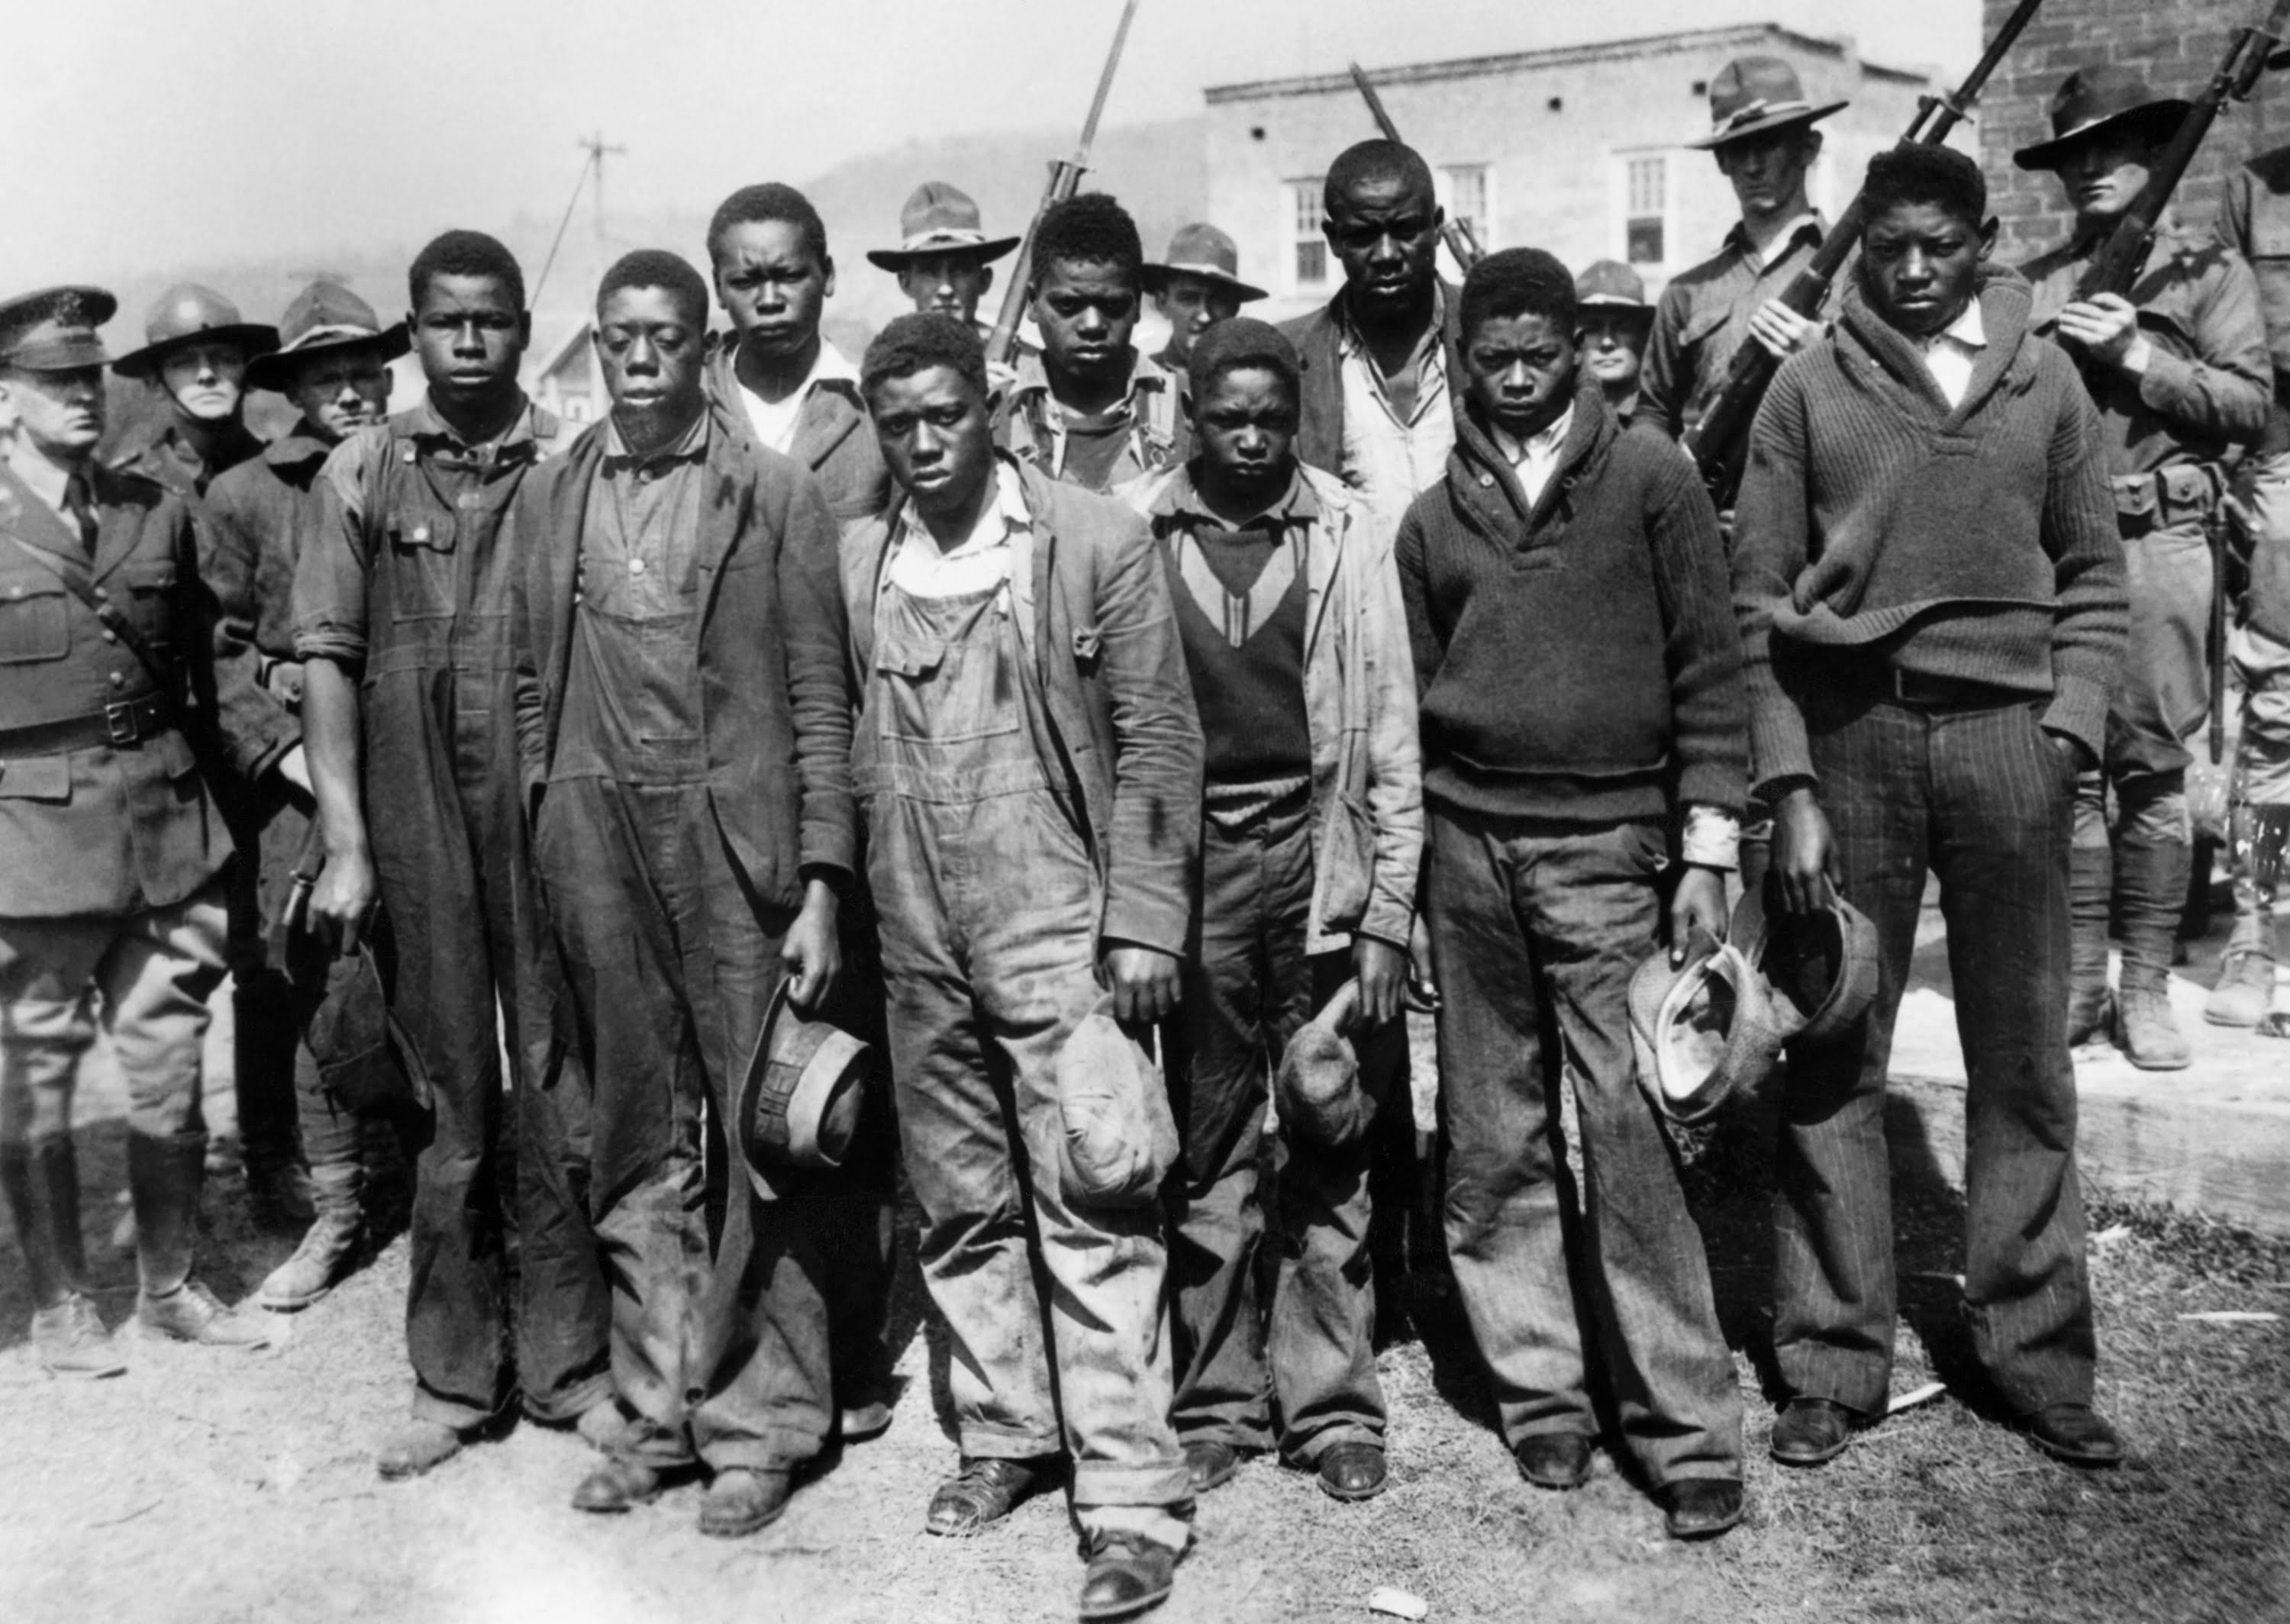 a study of the scottsboro boys In 1931, nine african american teenagers were falsely accused of assaulting two white women on a train in tennessee — a crime that never happened after rushed.